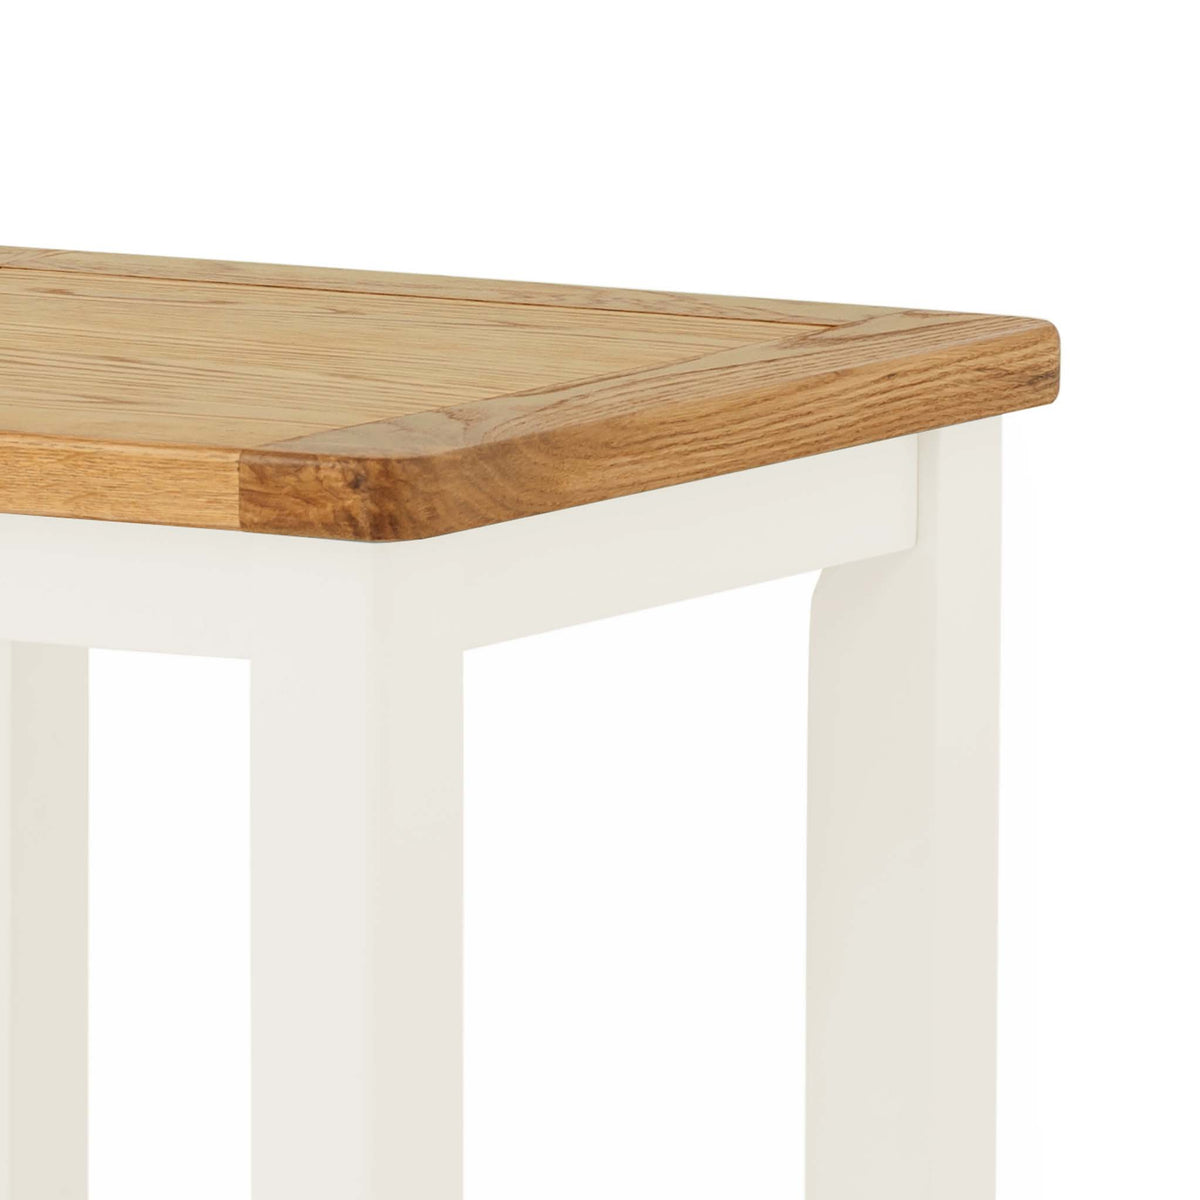 The Padstow White Small Wooden Side Lamp Table - Close Up of Oak Top